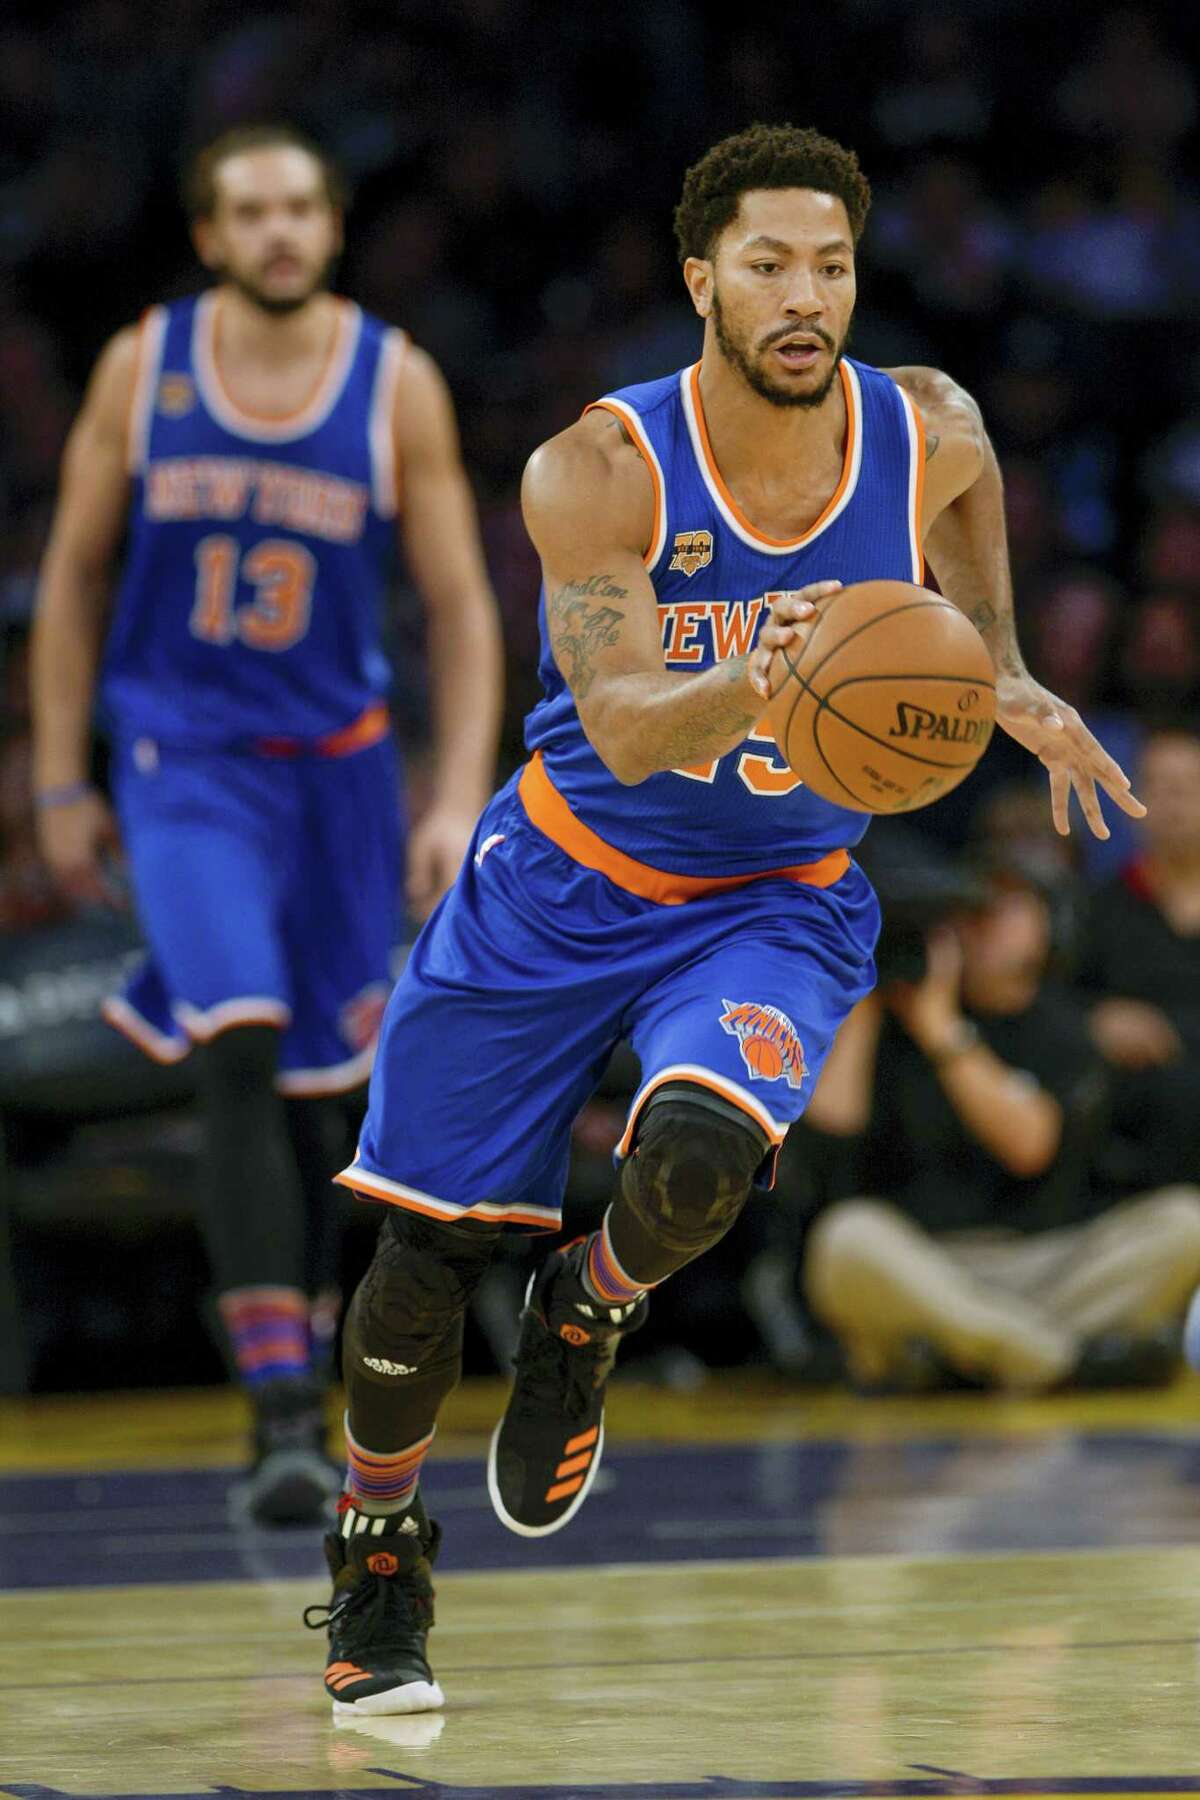 New York Knicks point guard Derrick Rose brings the ball up the court during the first half of an NBA basketball game against the Los Angeles Lakers on Sunday, Dec. 11, 2016 in Los Angeles.